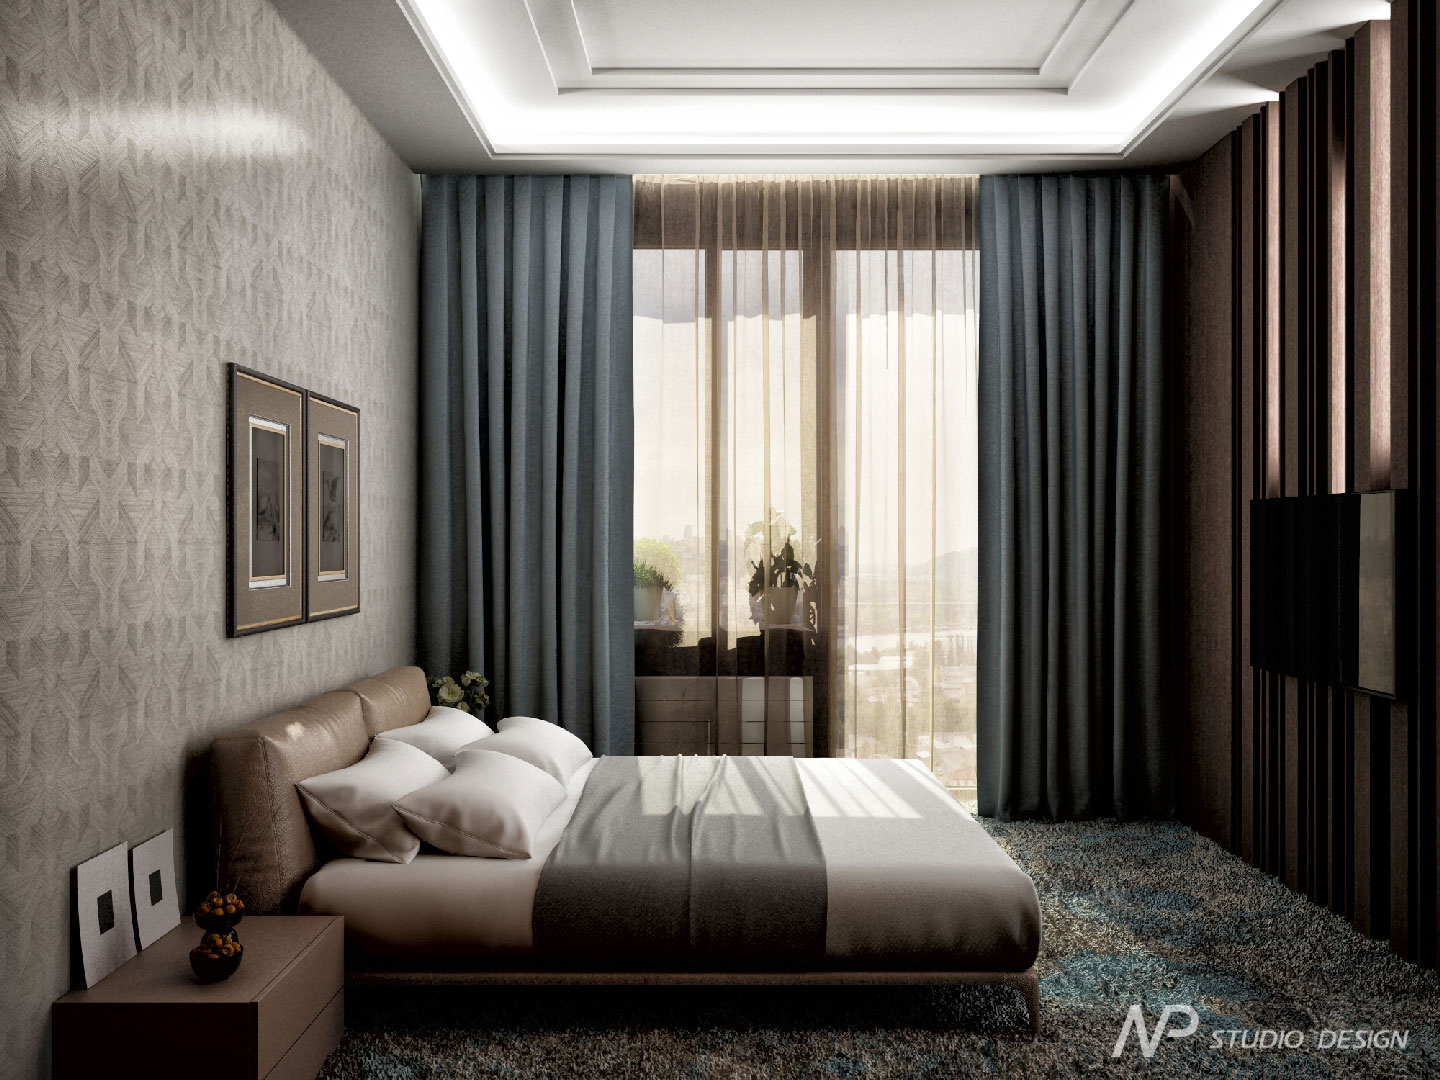 LuxuryDesign (47)